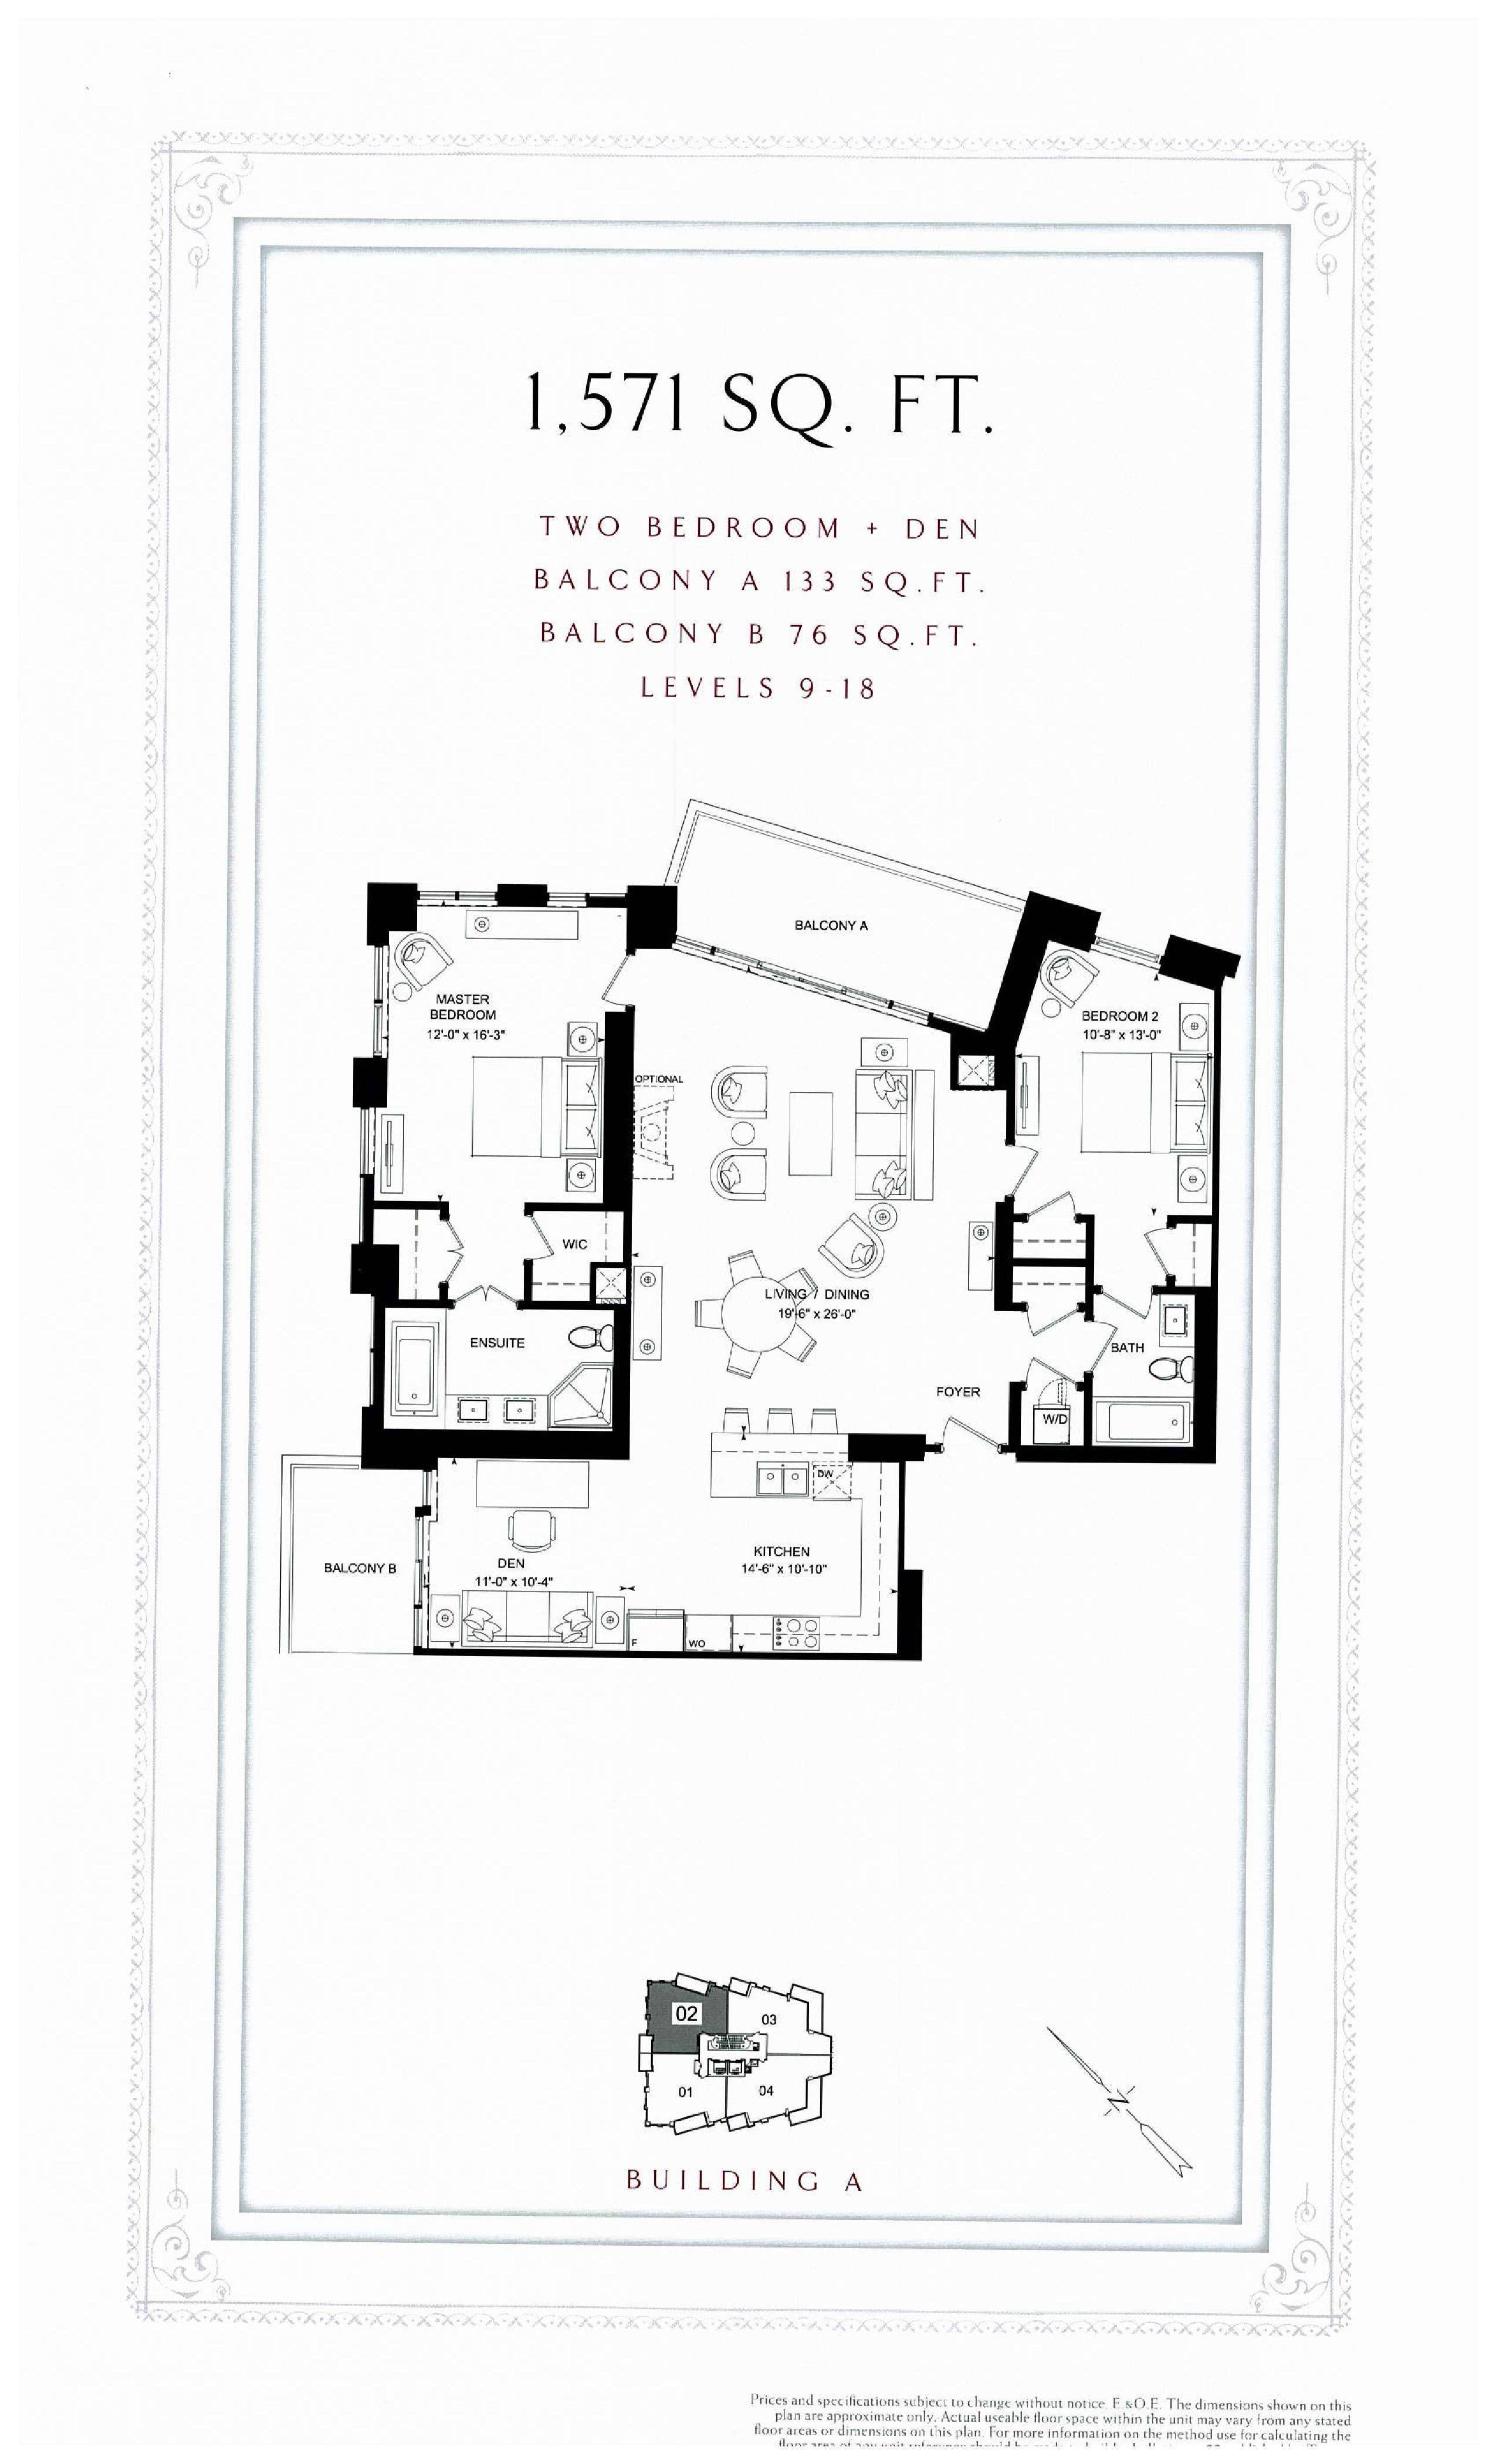 1,571 sq. ft. Floor Plan at Bridgewater Residences on the Lake Condos - 1571 sq.ft